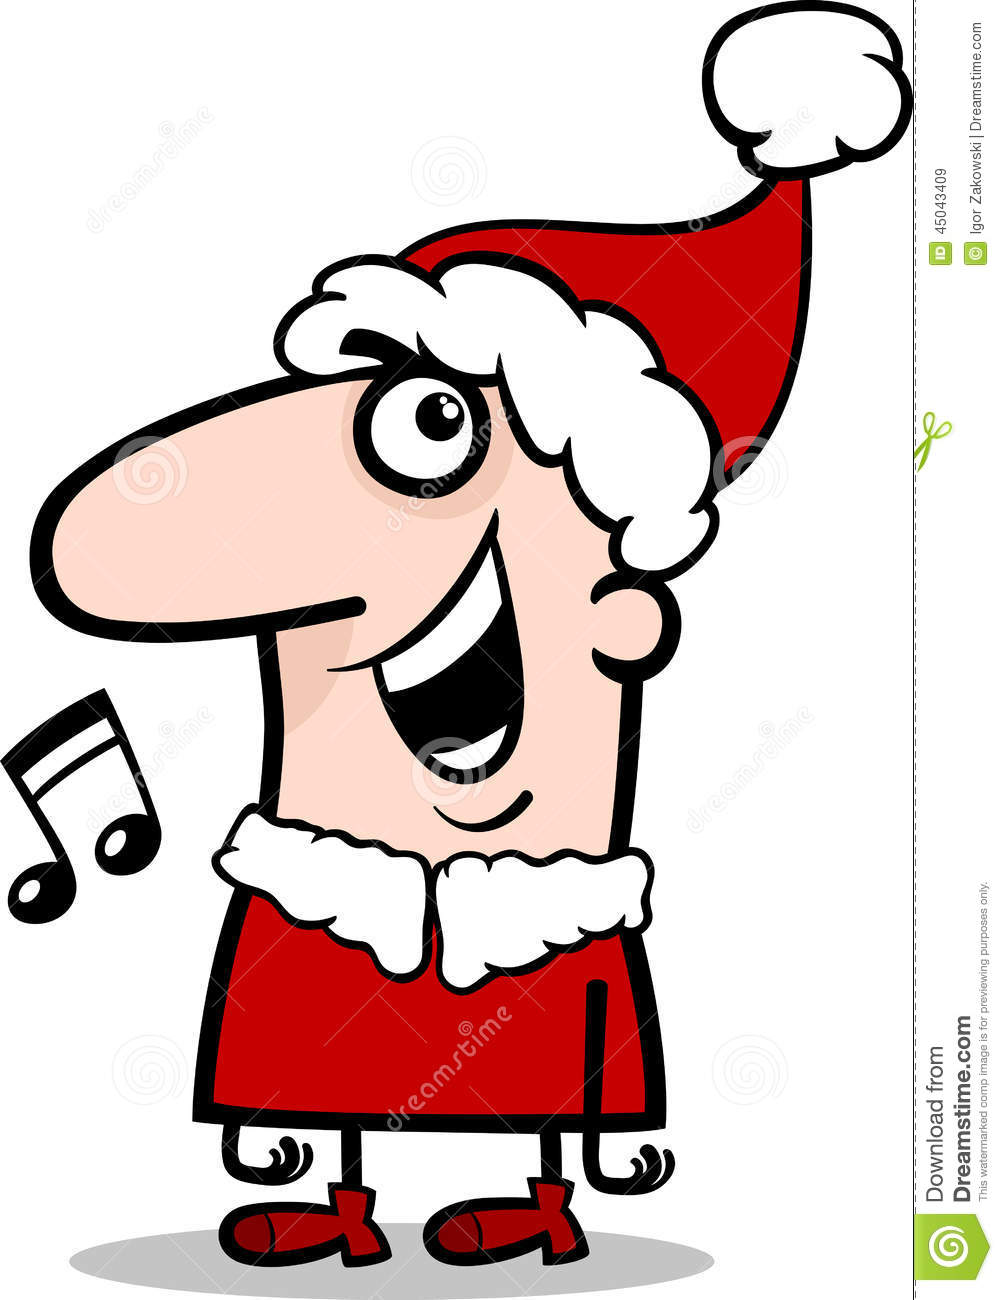 Santa Singing Carol Cartoon Illustration Stock Vector.